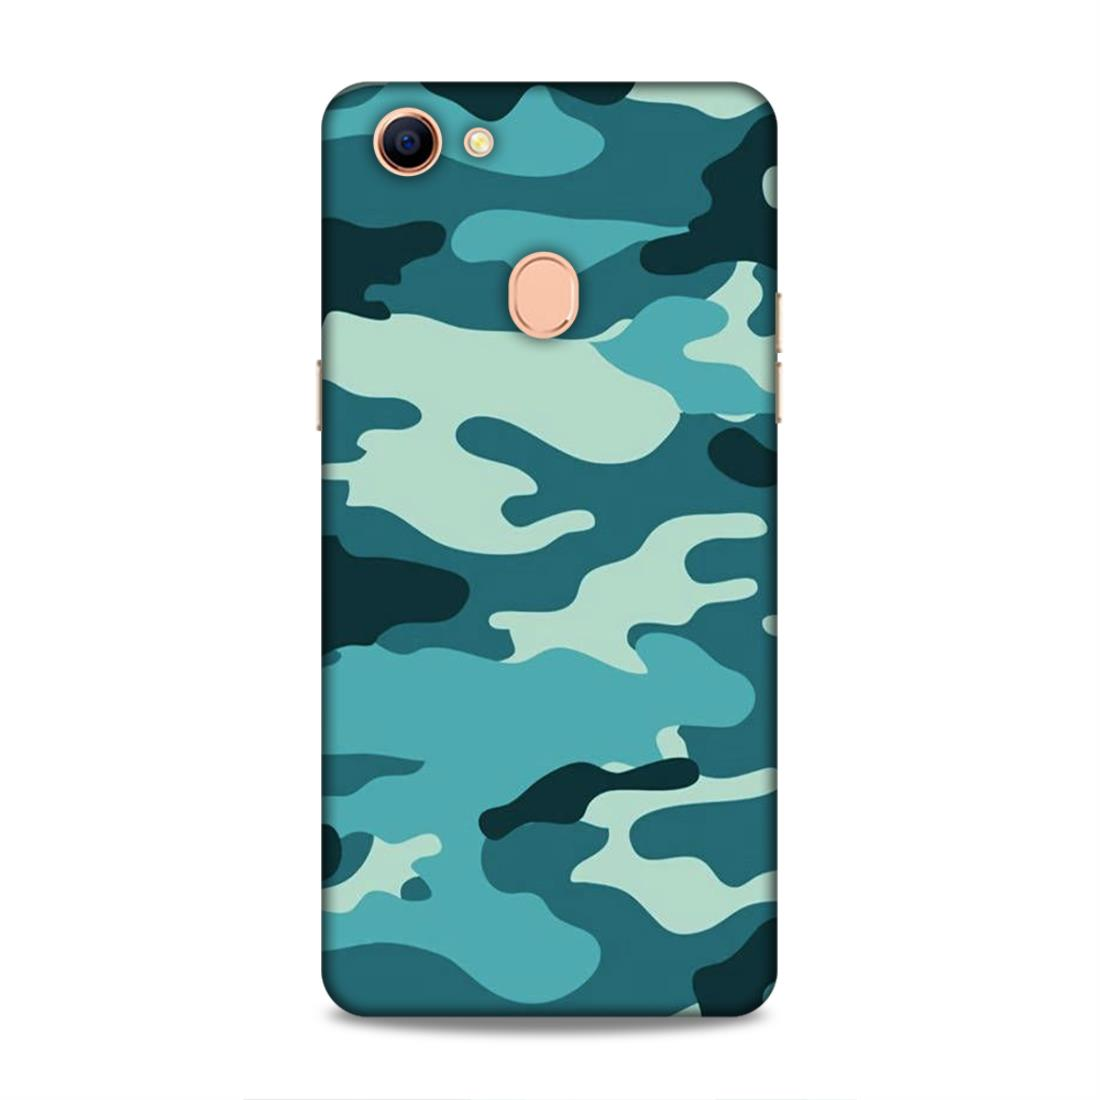 buy online aa5ce 86104 Pubg Oppo F7 Mobile Back Cover nx592